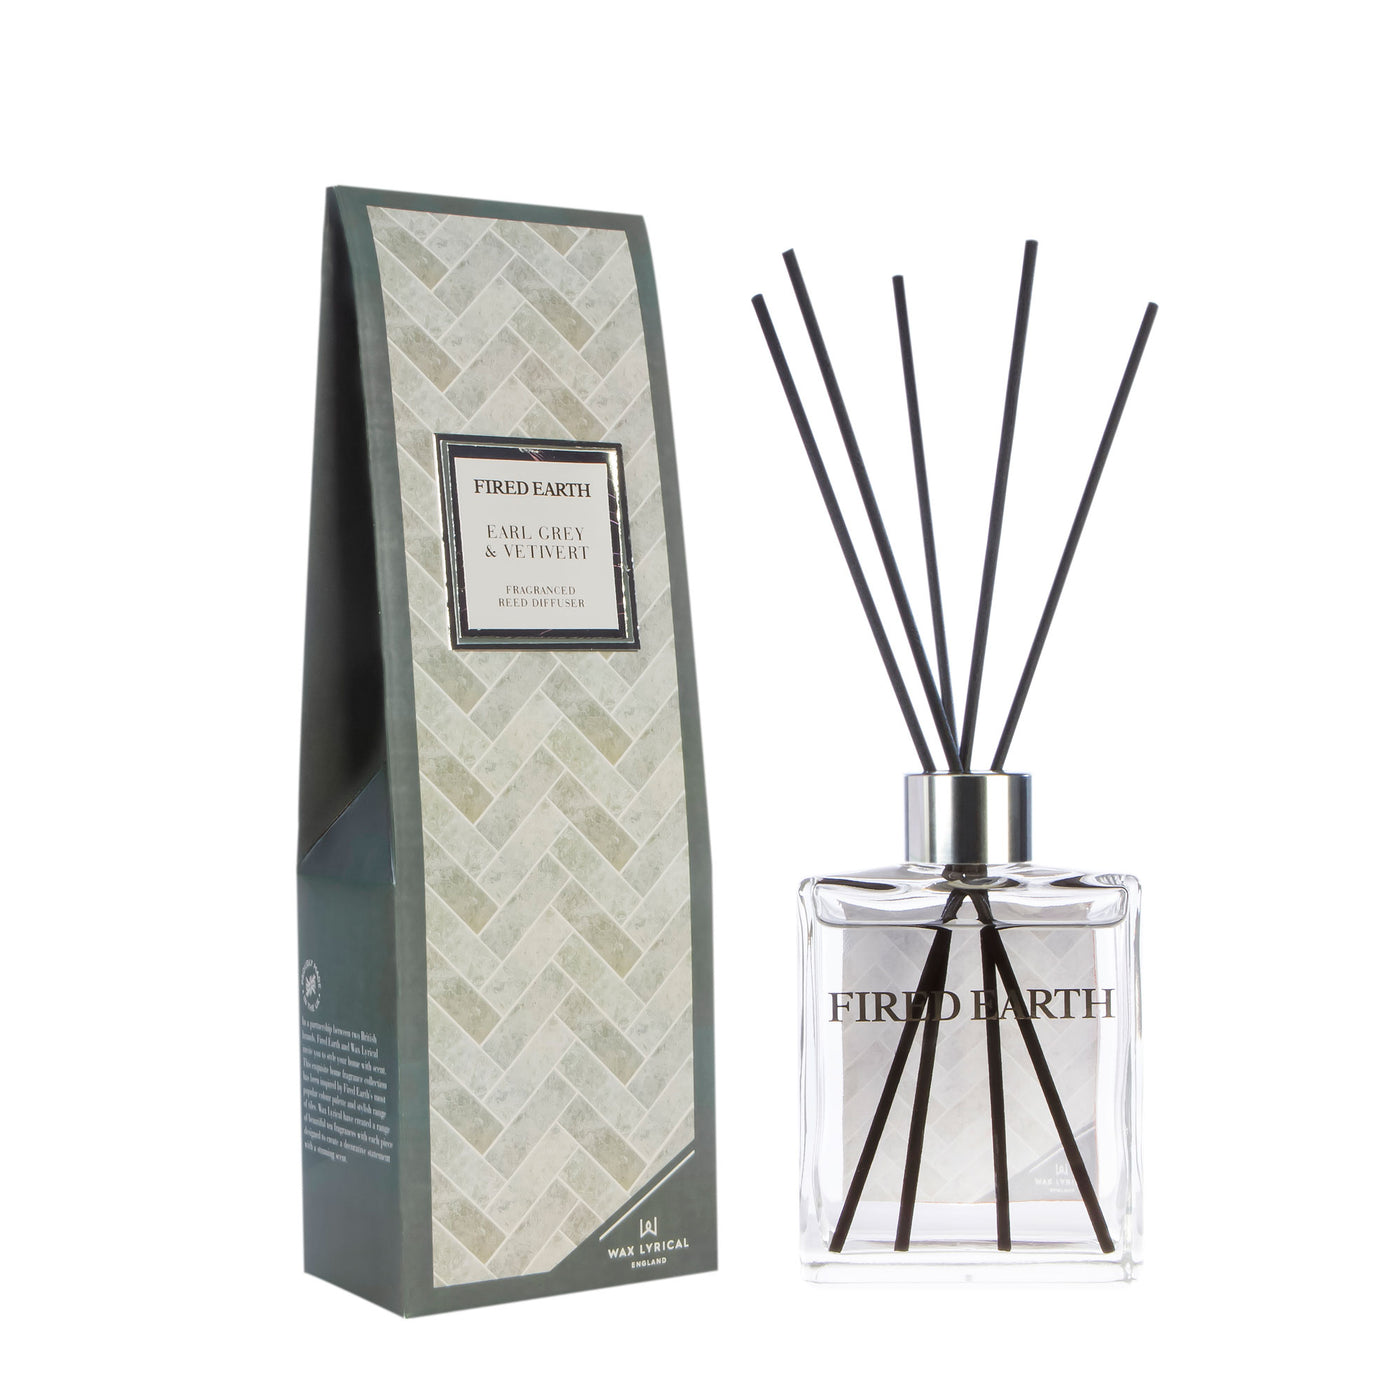 Fired Earth Room Diffuser 180mL, Earl Grey & Vetivert